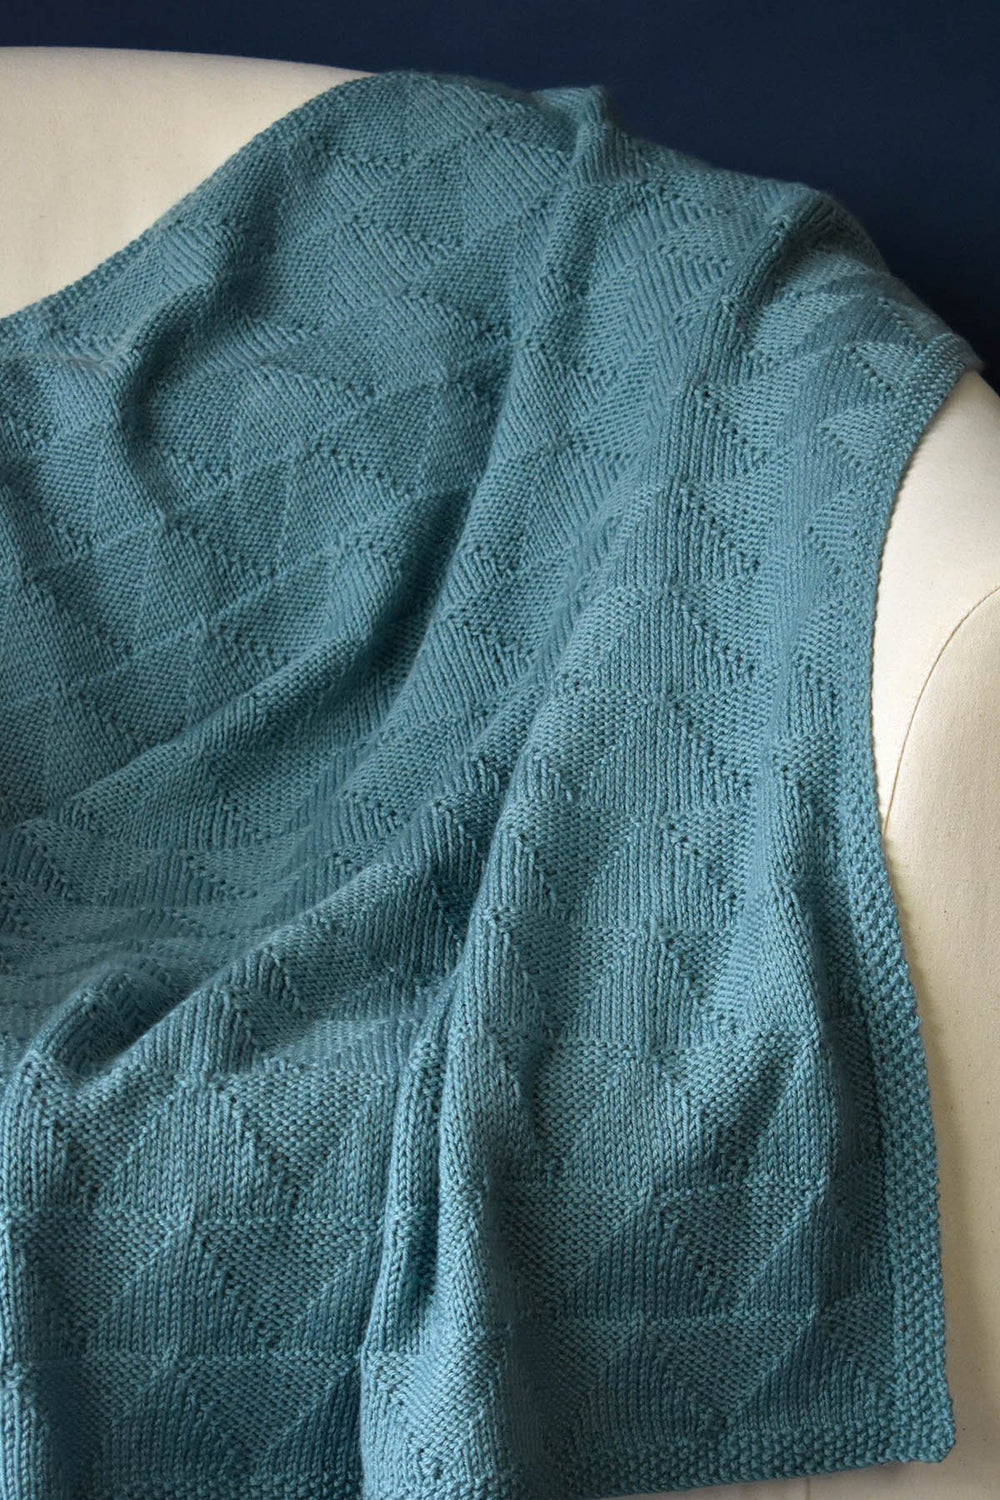 Knits, purls make this triangle knitting blanket pattern